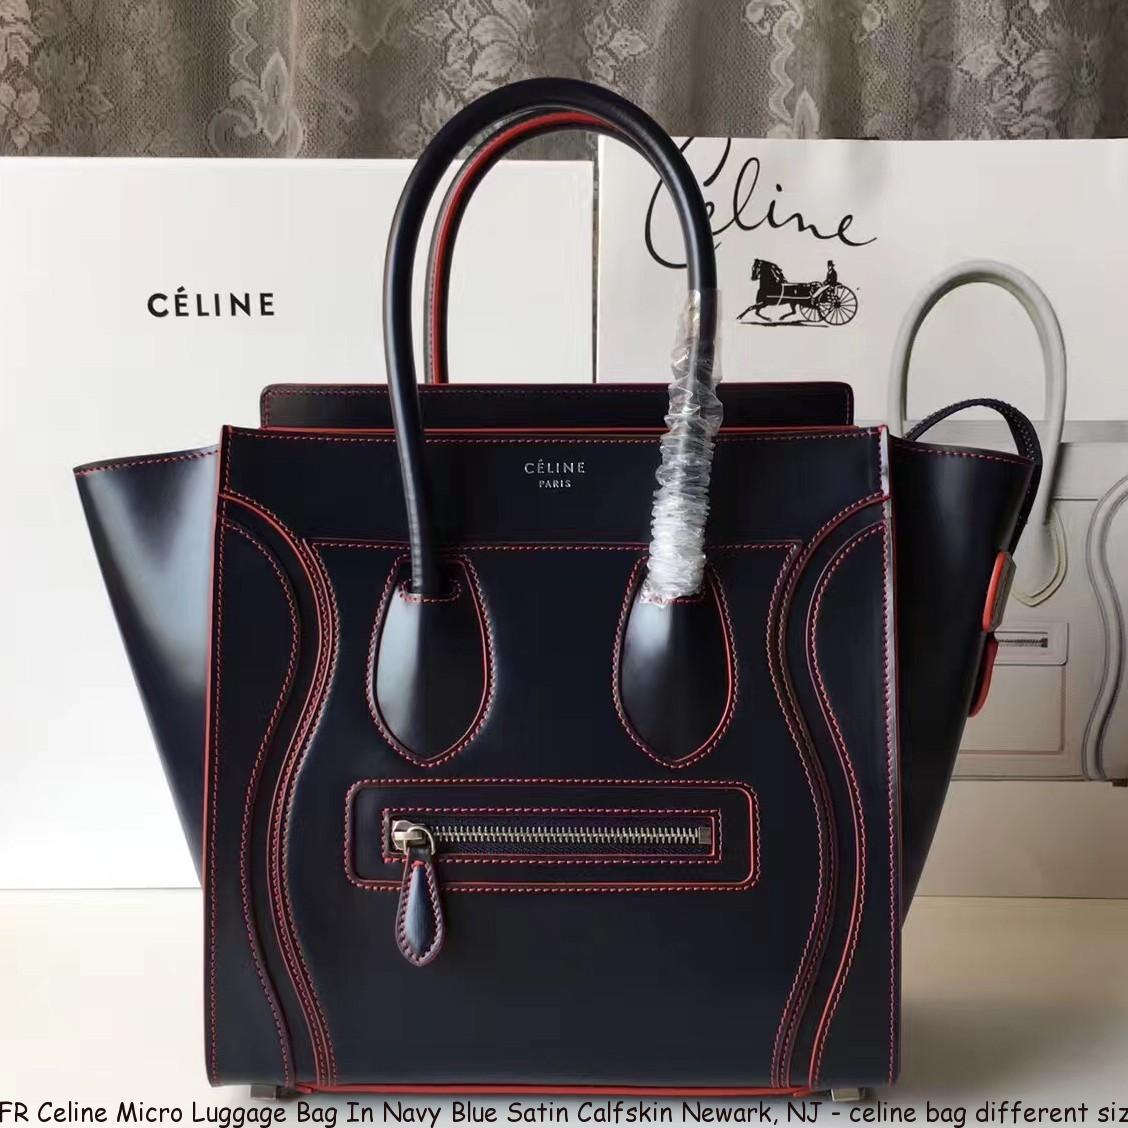 FR Celine Micro Luggage Bag In Navy Blue Satin Calfskin Newark bf441d1efd78f